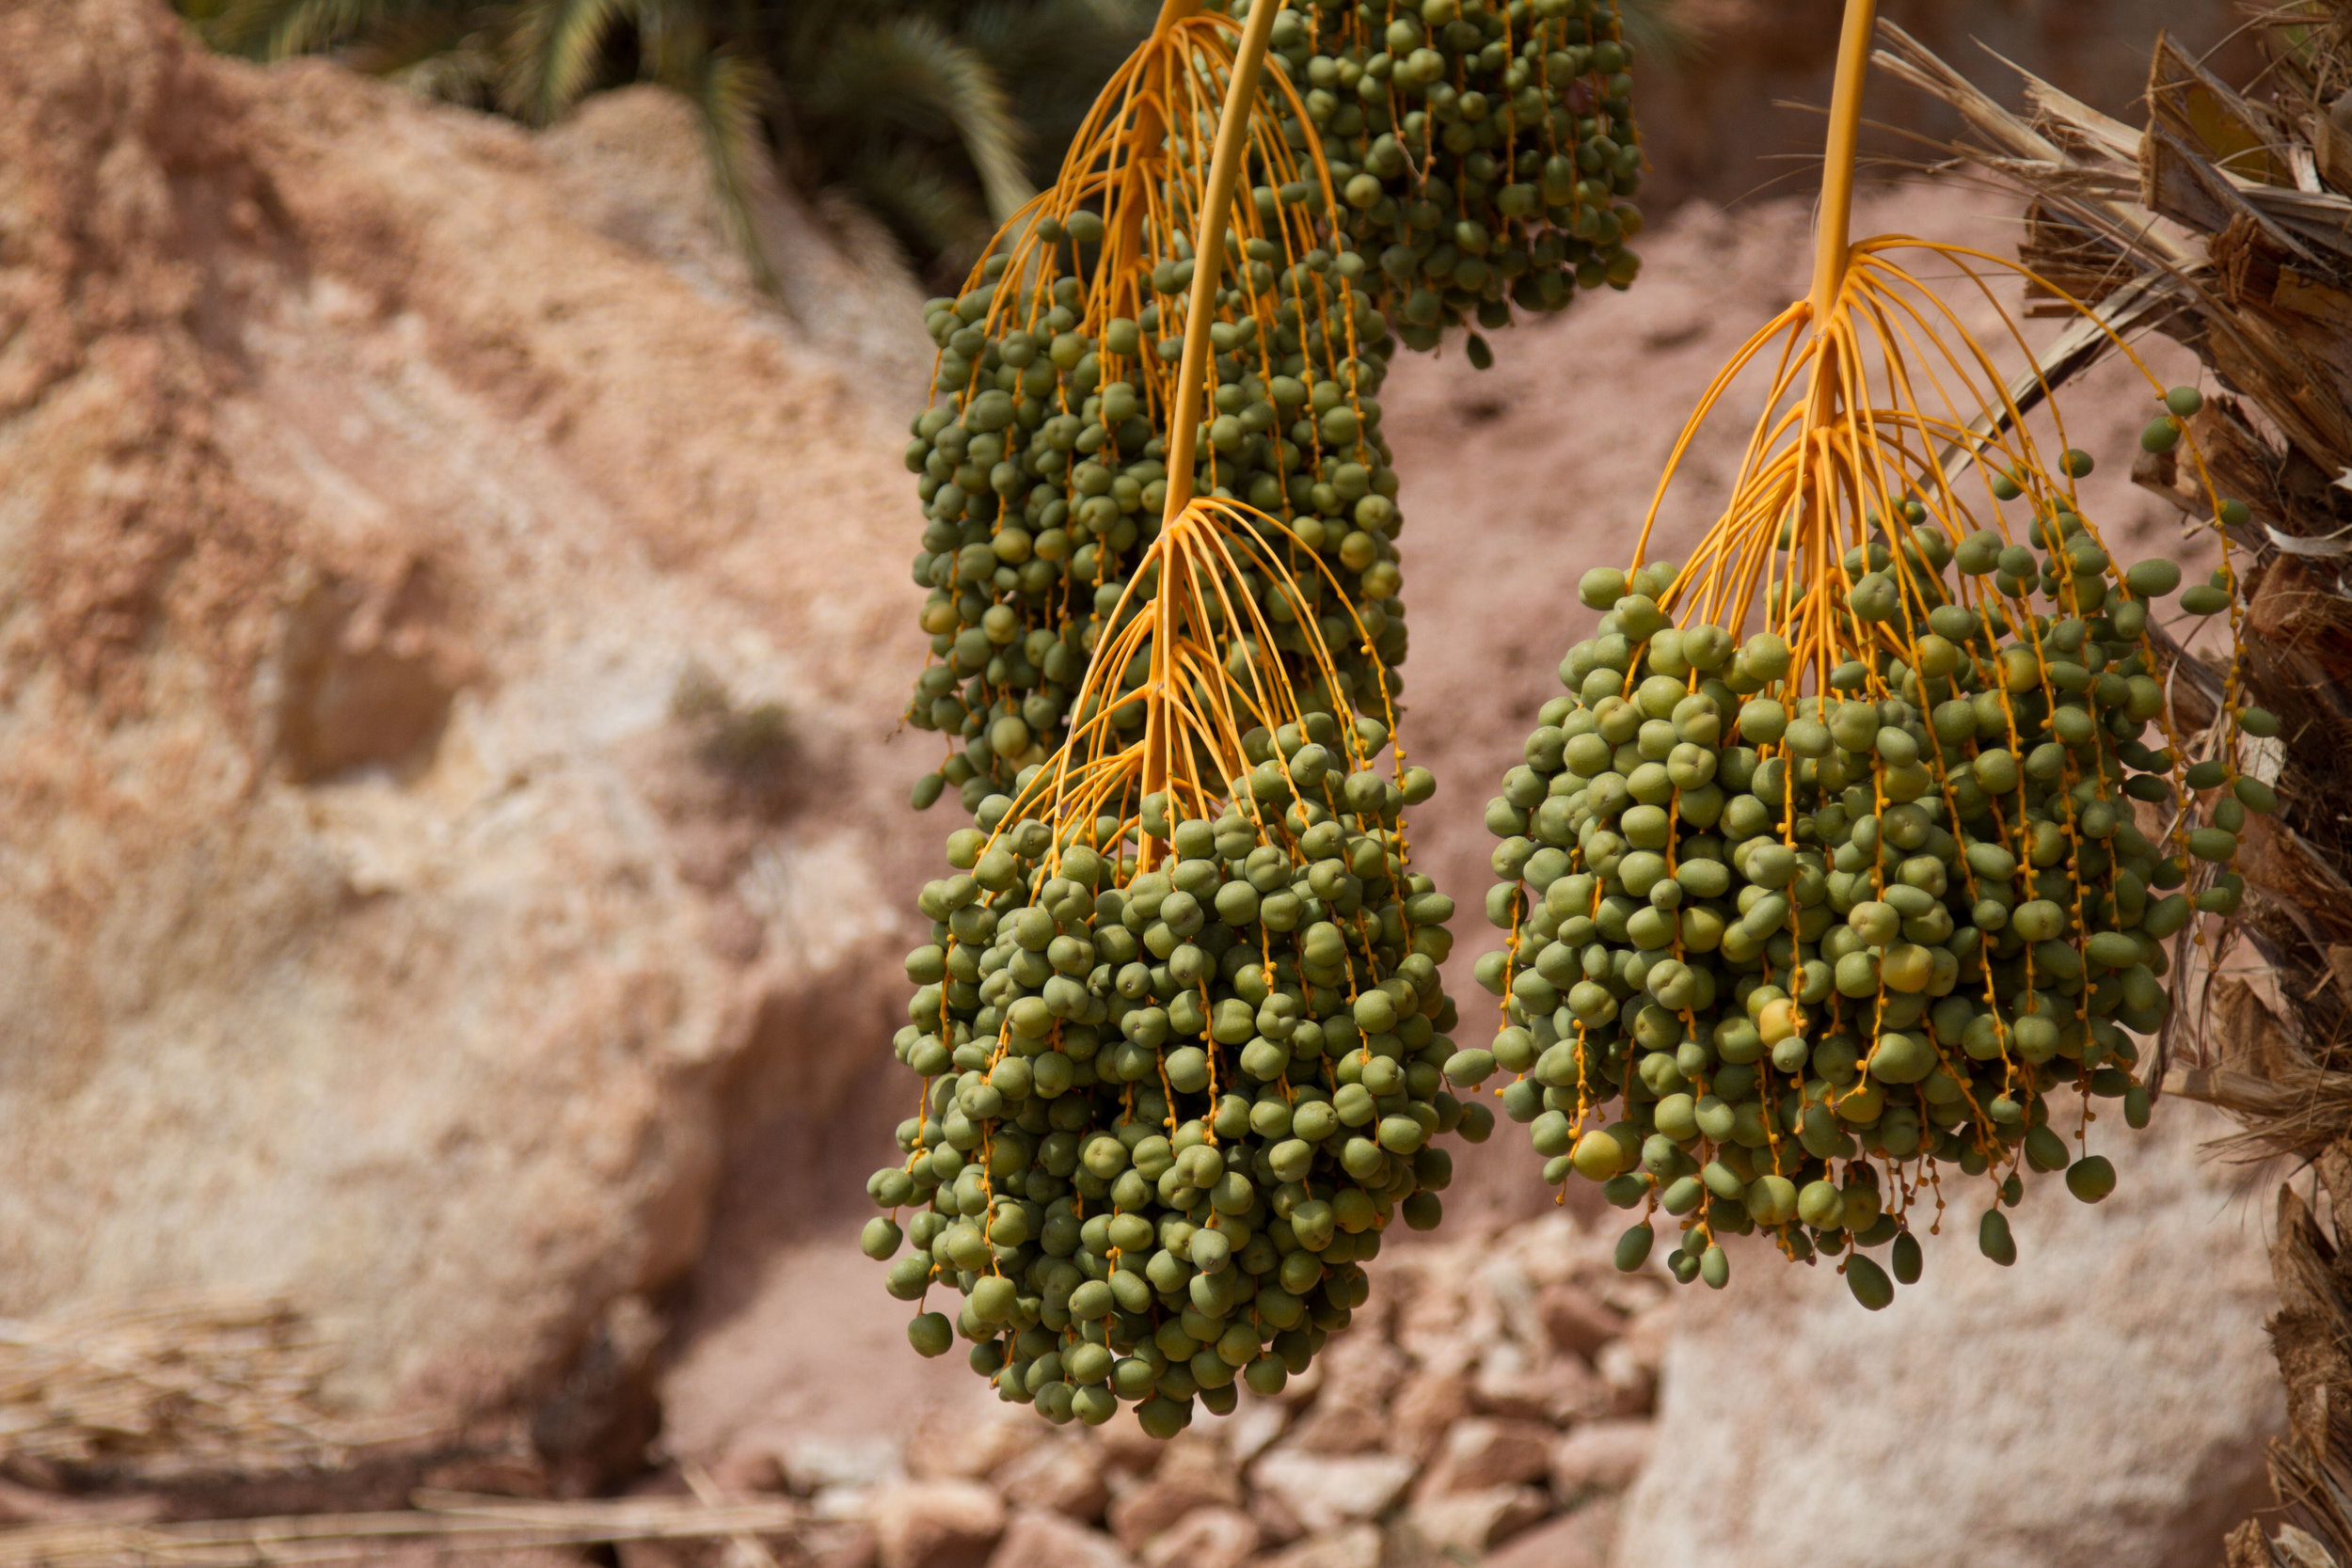 An abundance of date trees are grown throughout the arid land